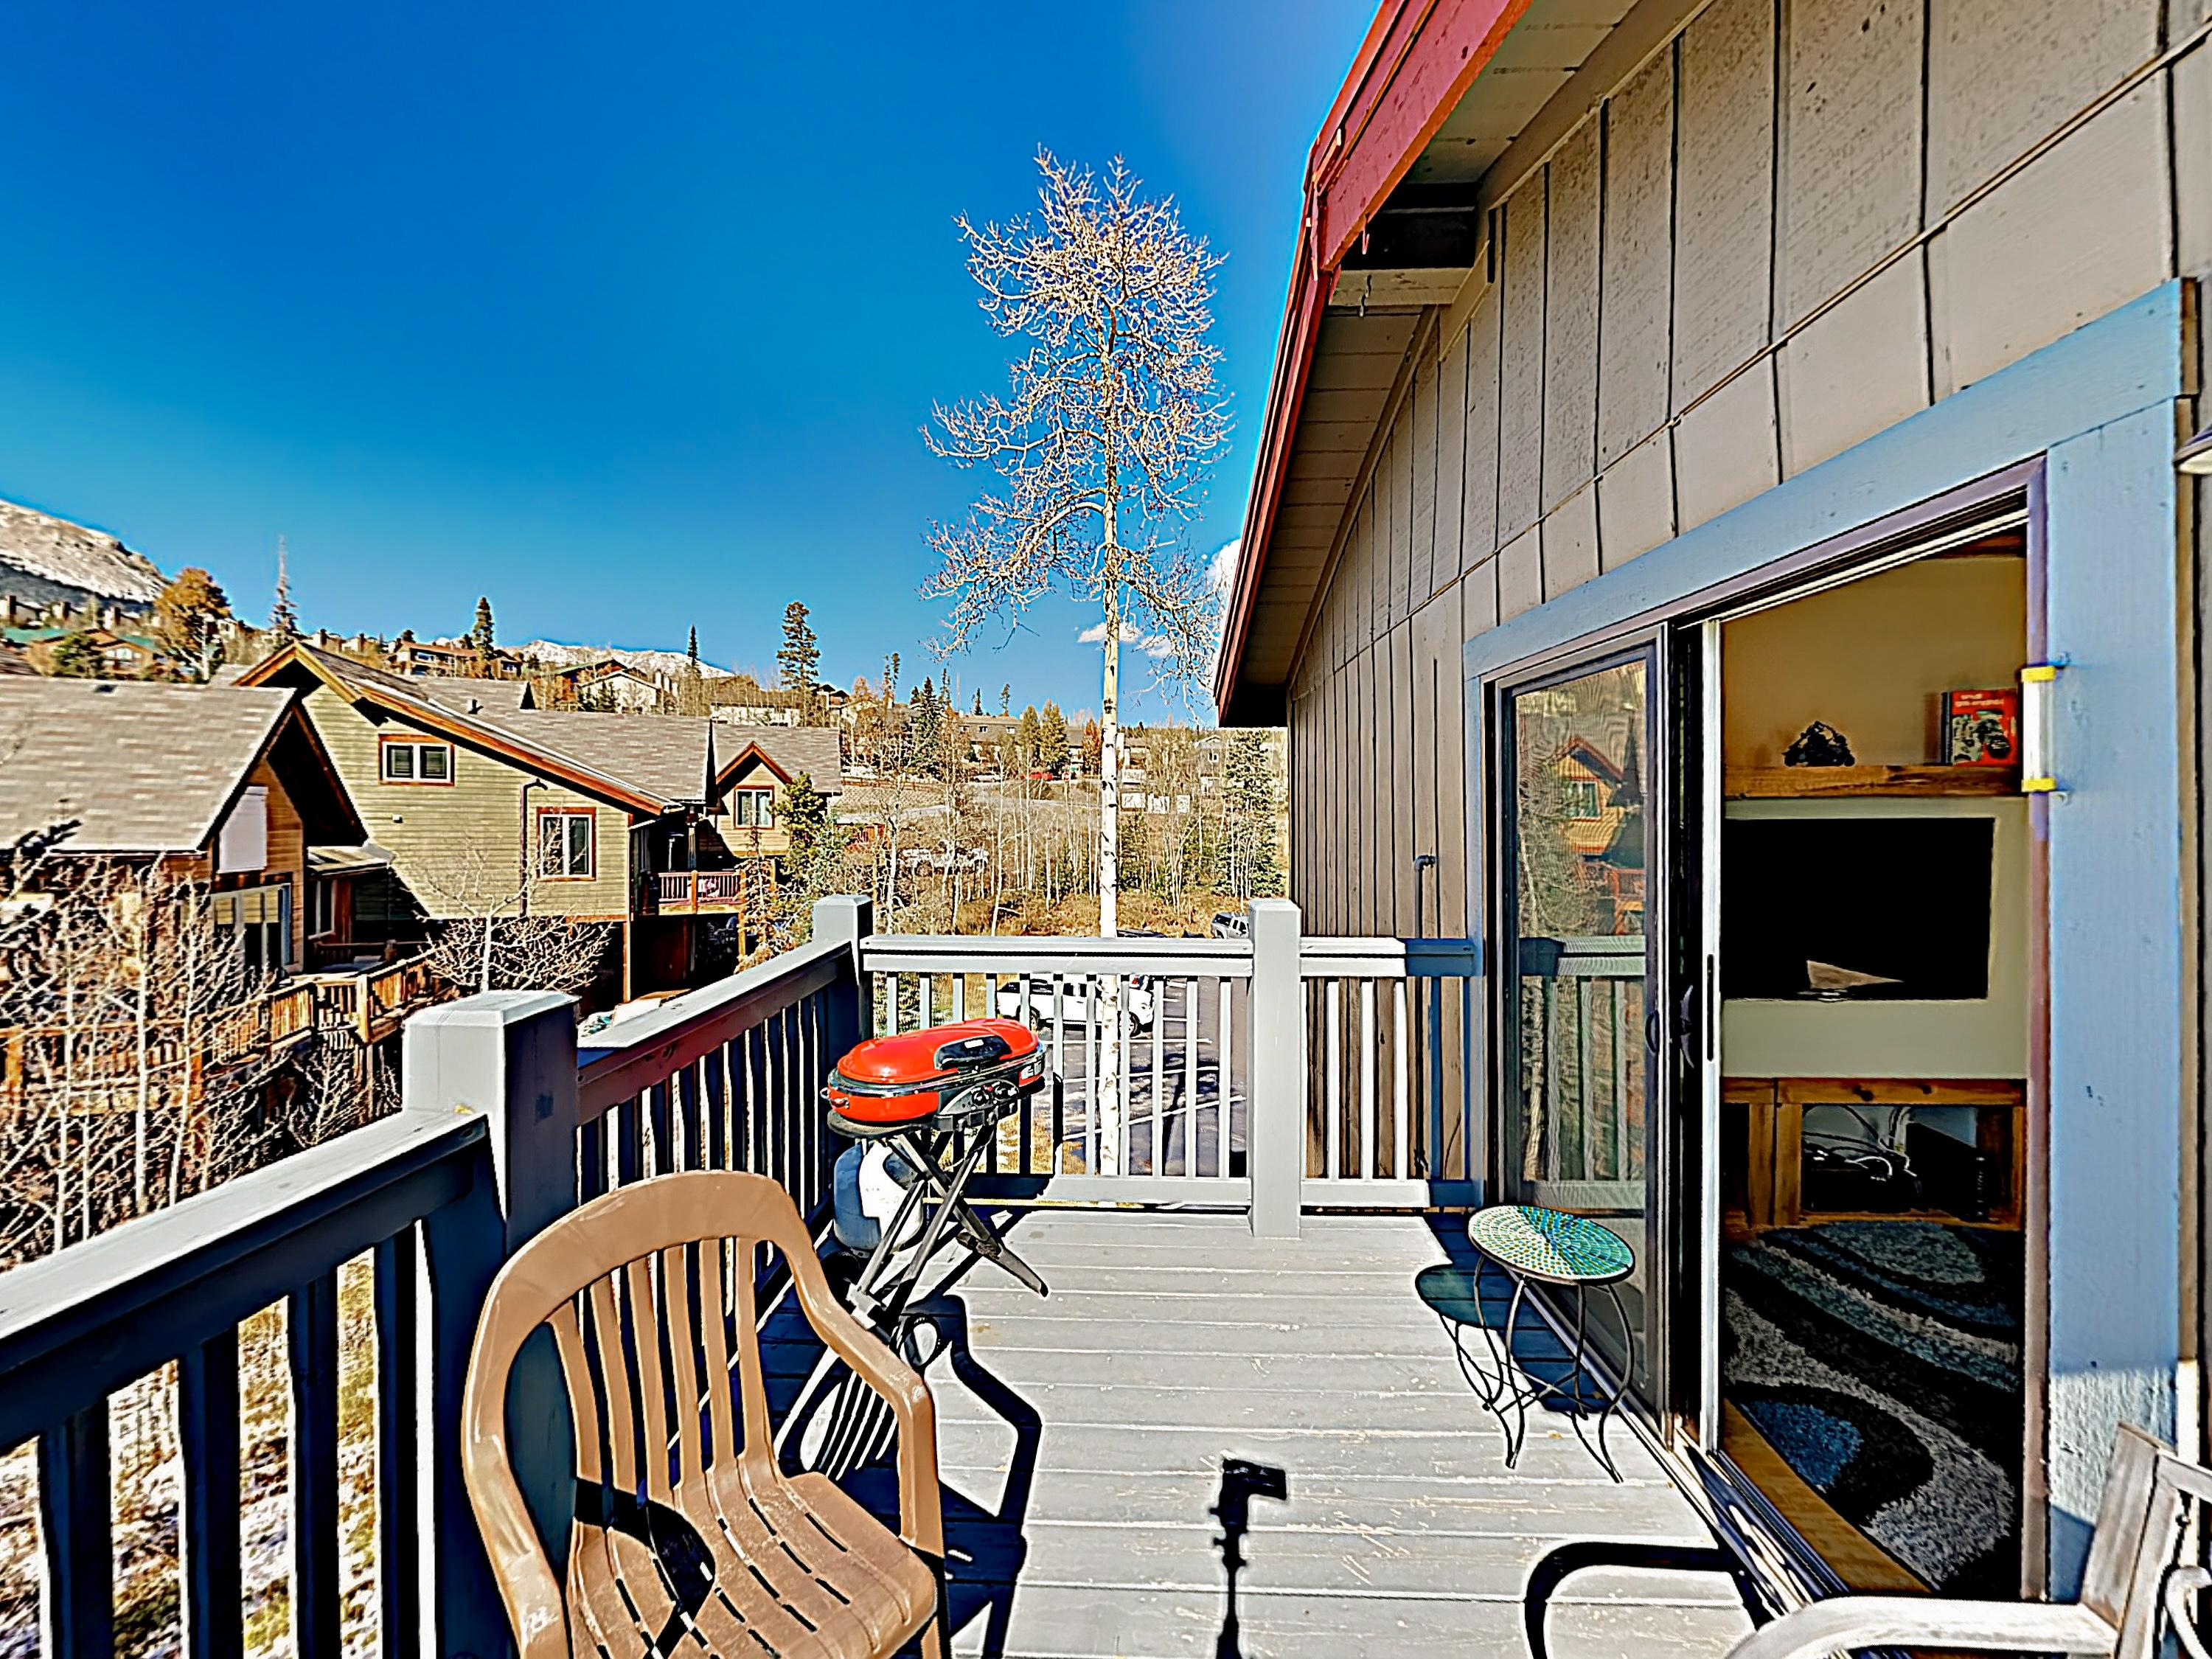 Enjoy the fresh mountain air on the balcony as you sizzle steaks and veggies on the gas grill.